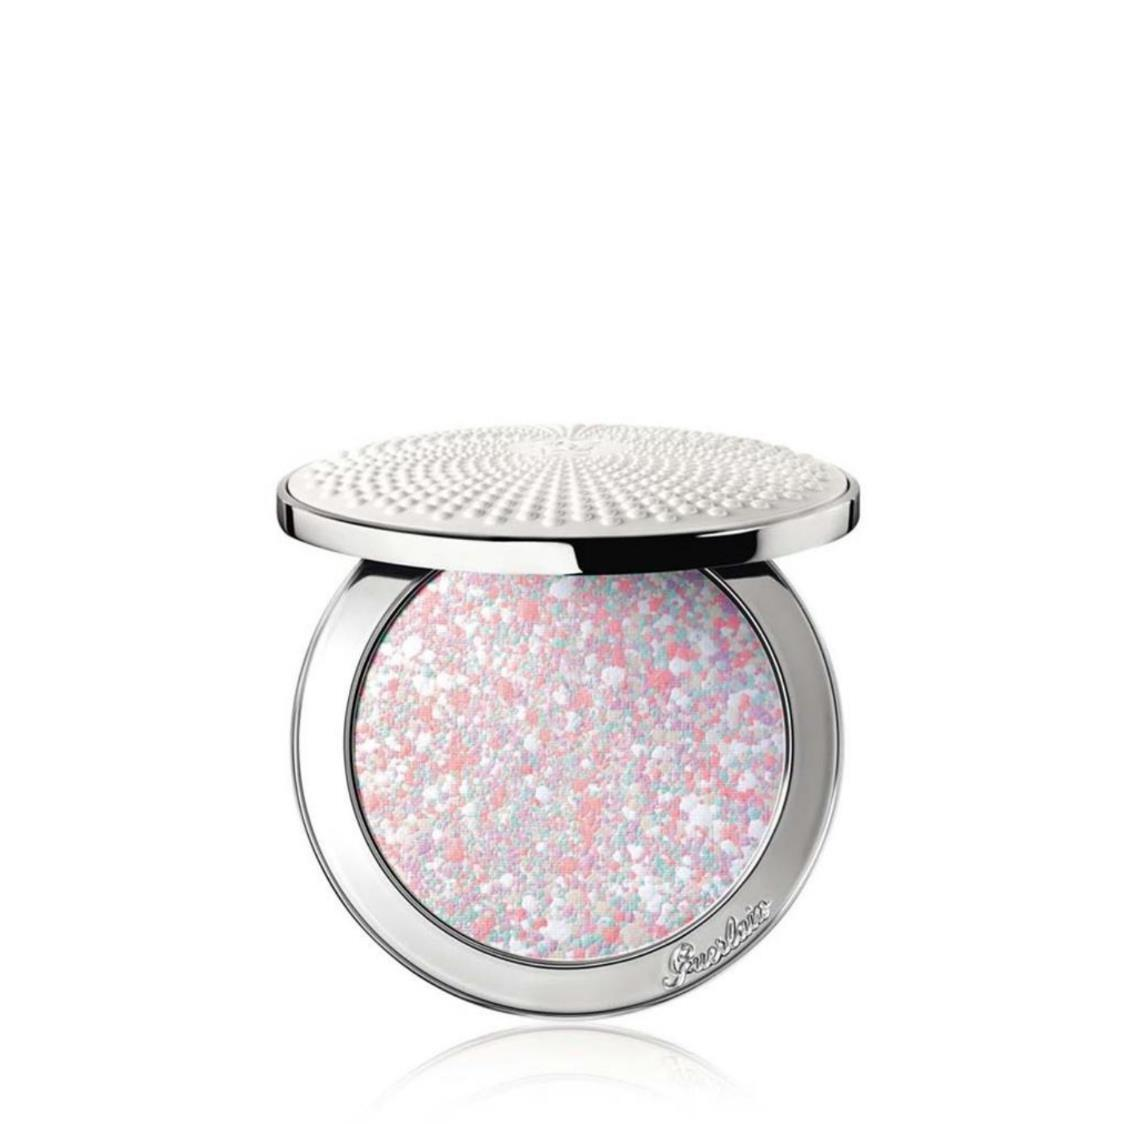 Guerlain Mtorites Voyage Exceptional Compacted Pearls Of Powder Mythic